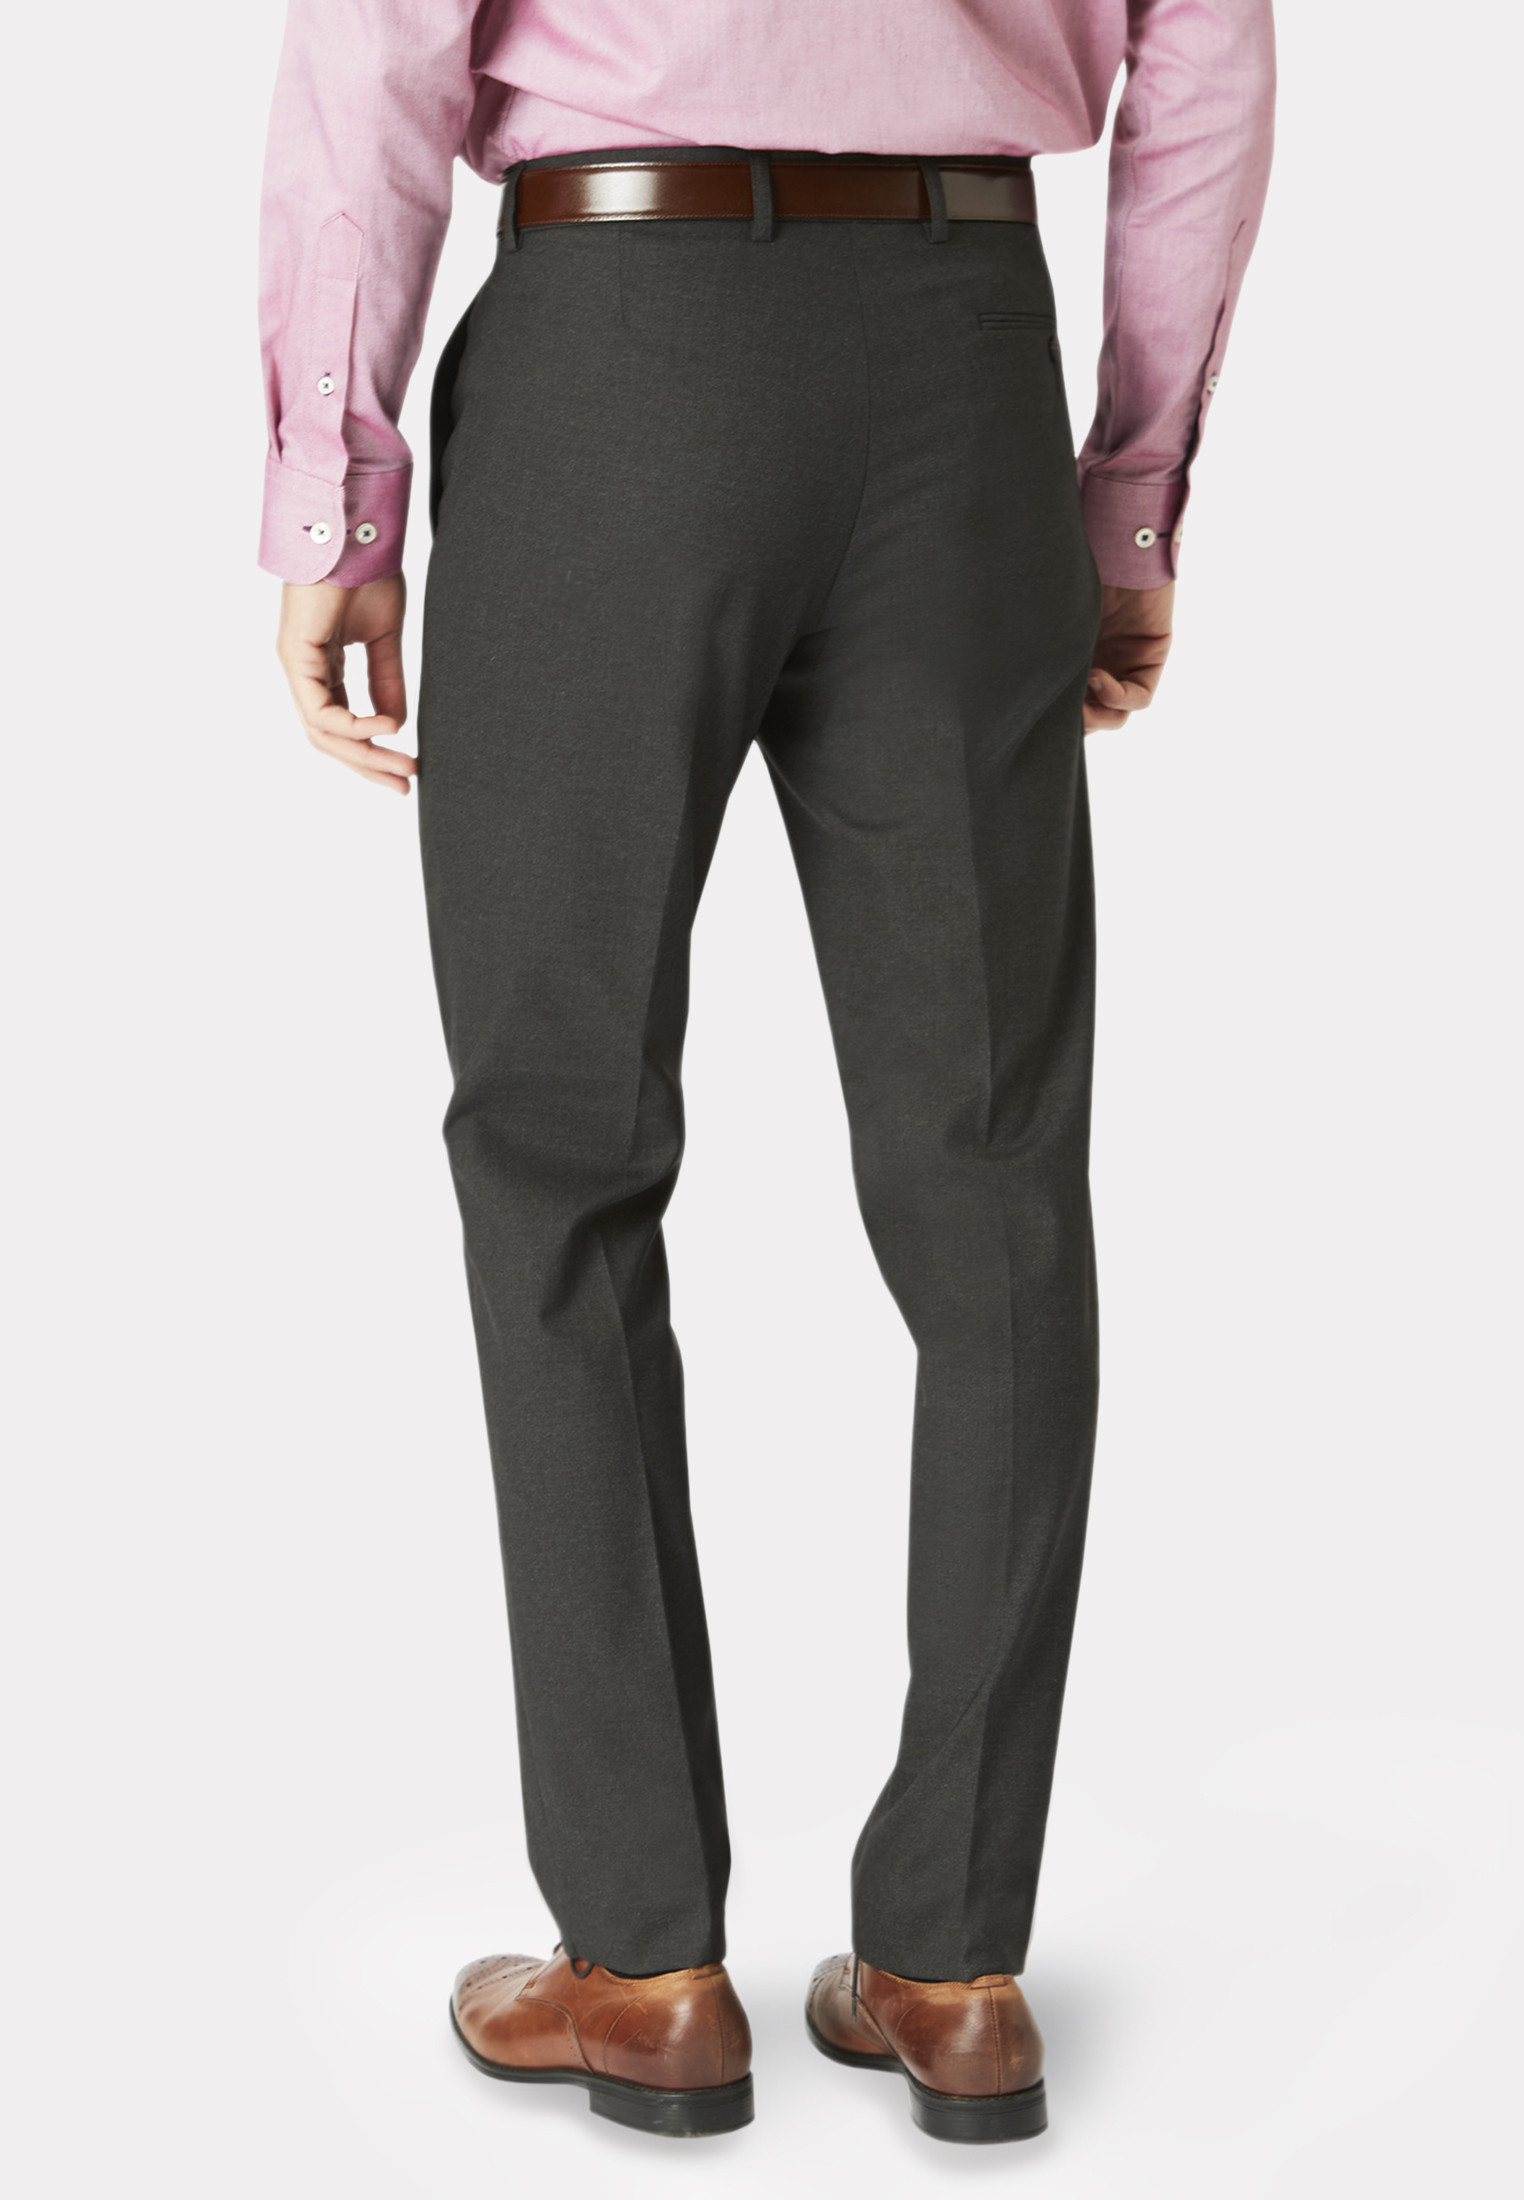 Dijon Charcoal Tailored Fit Three Piece Suit - Waistcoat Optional